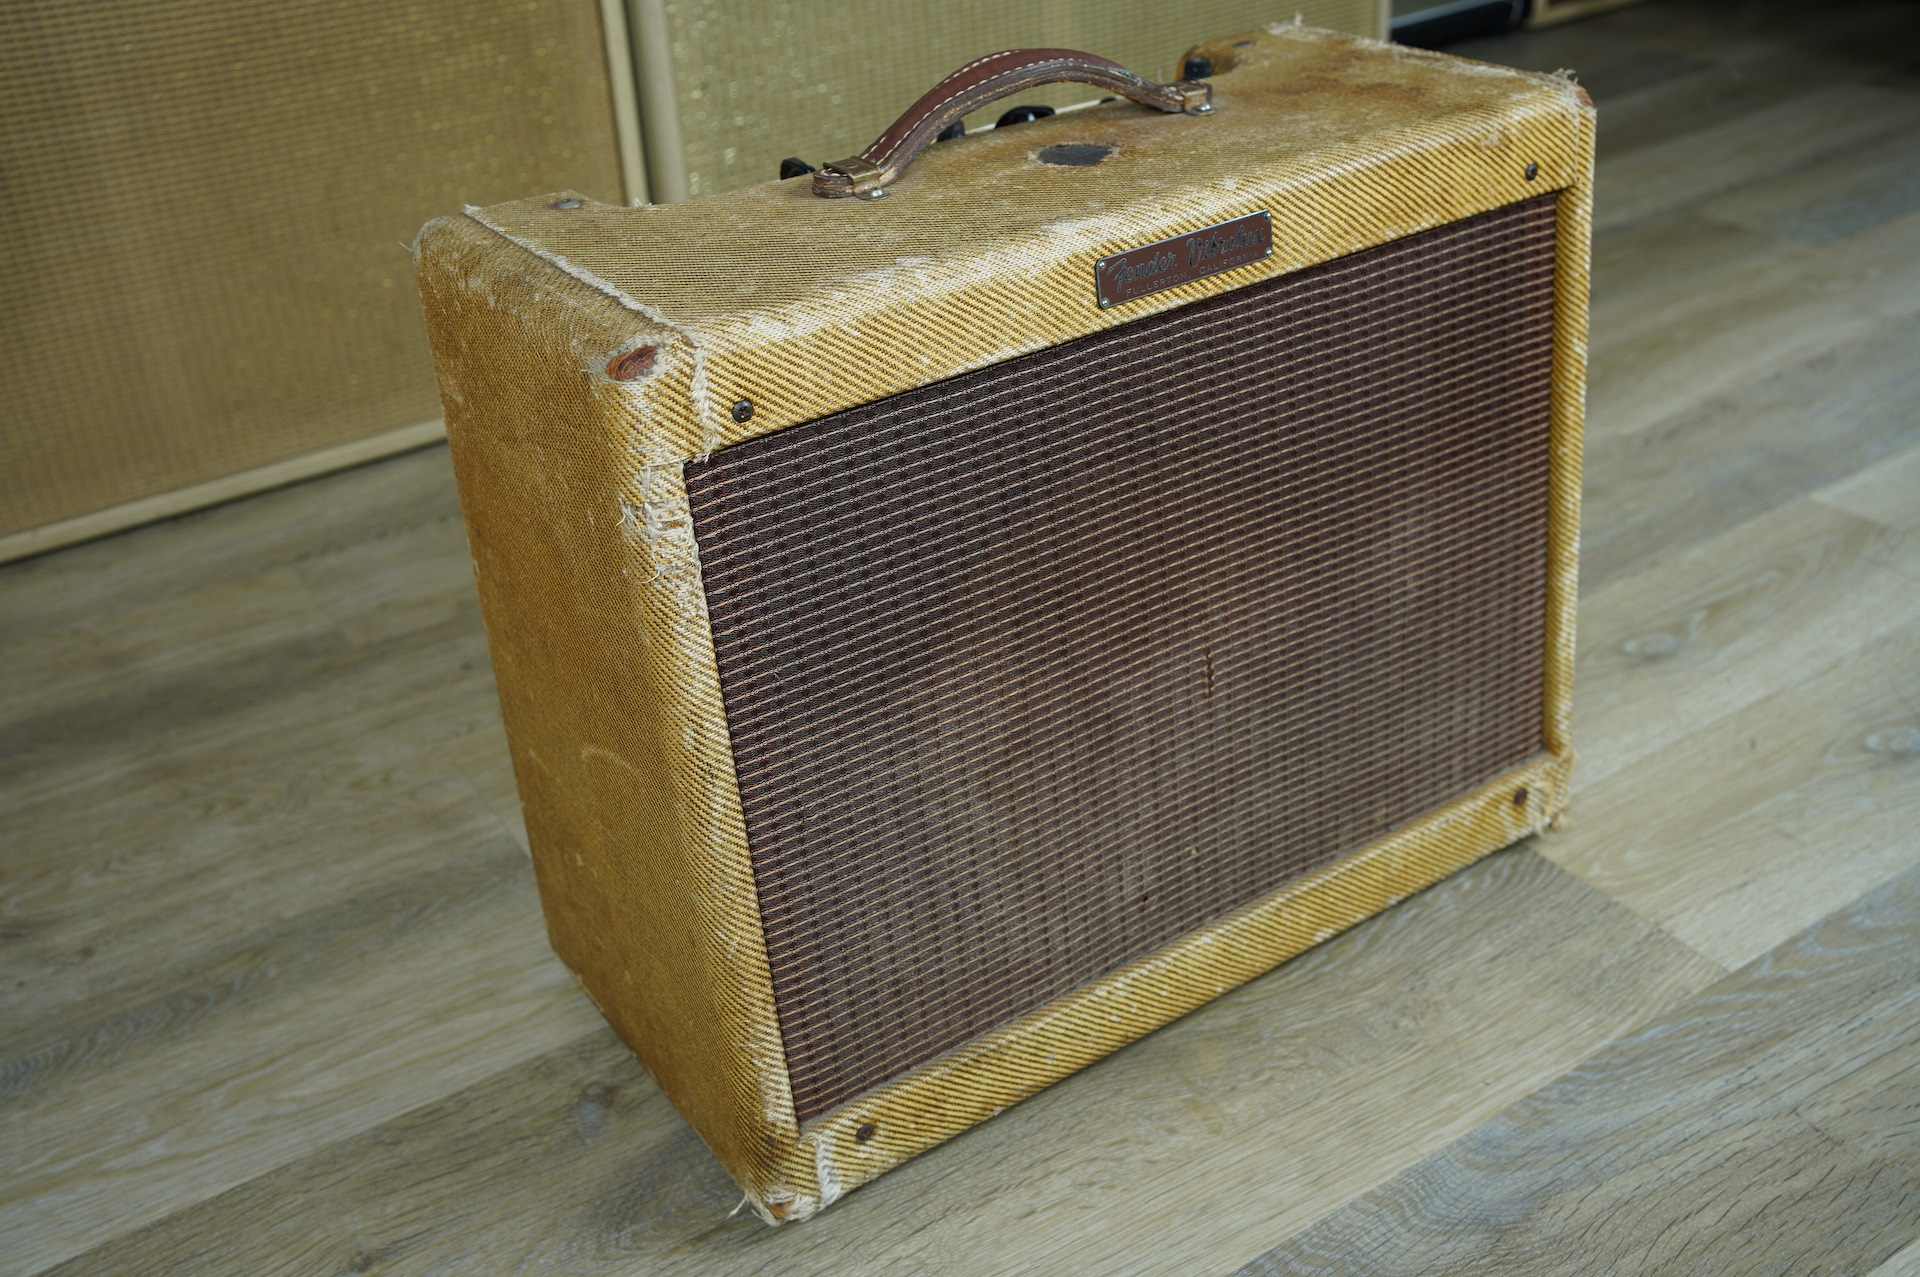 1960 Fender Vibrolux Tweed Amplifier